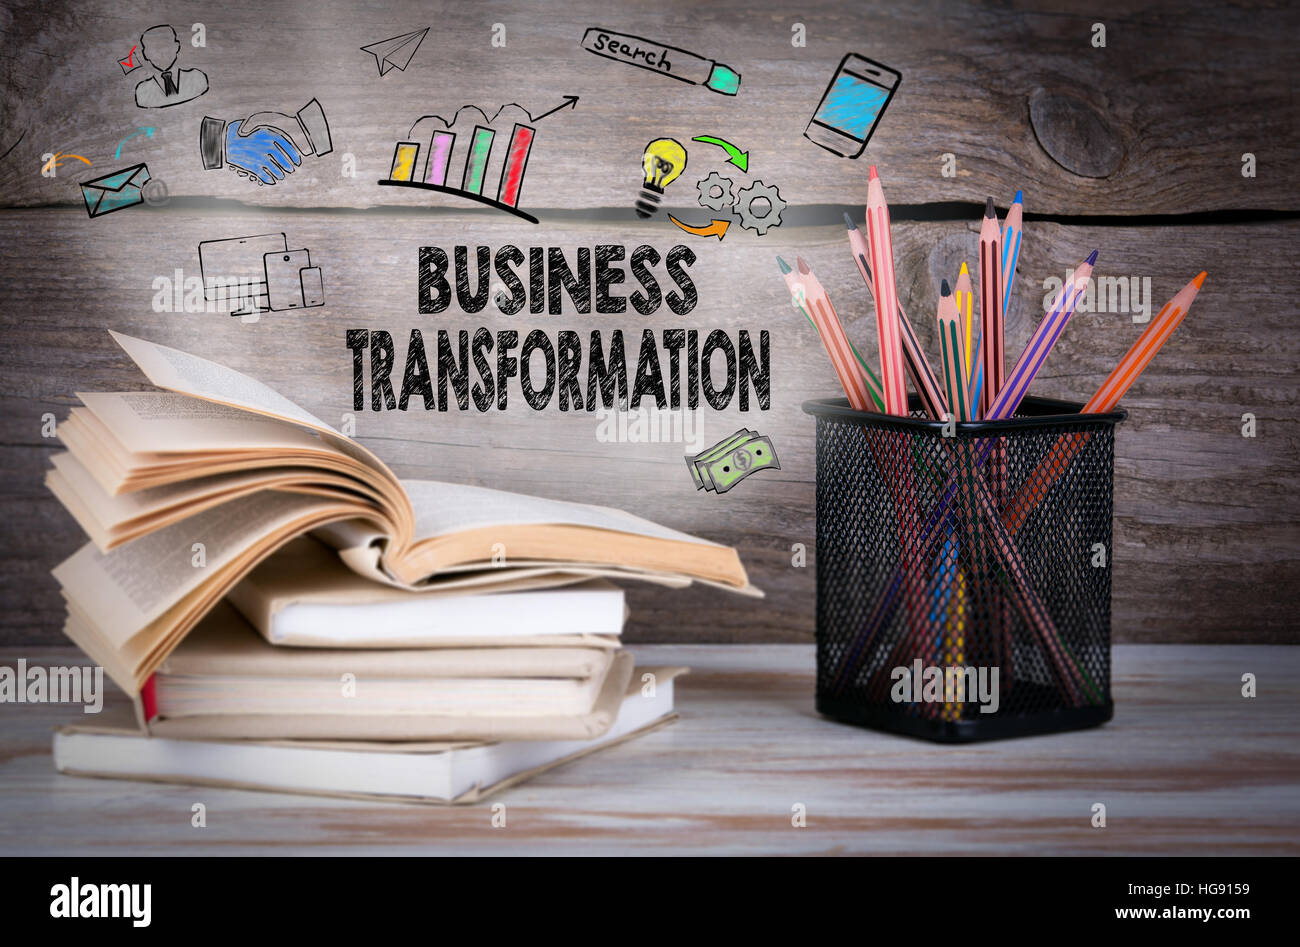 Business Transformation. Stack of books and pencils on the wooden table. - Stock Image